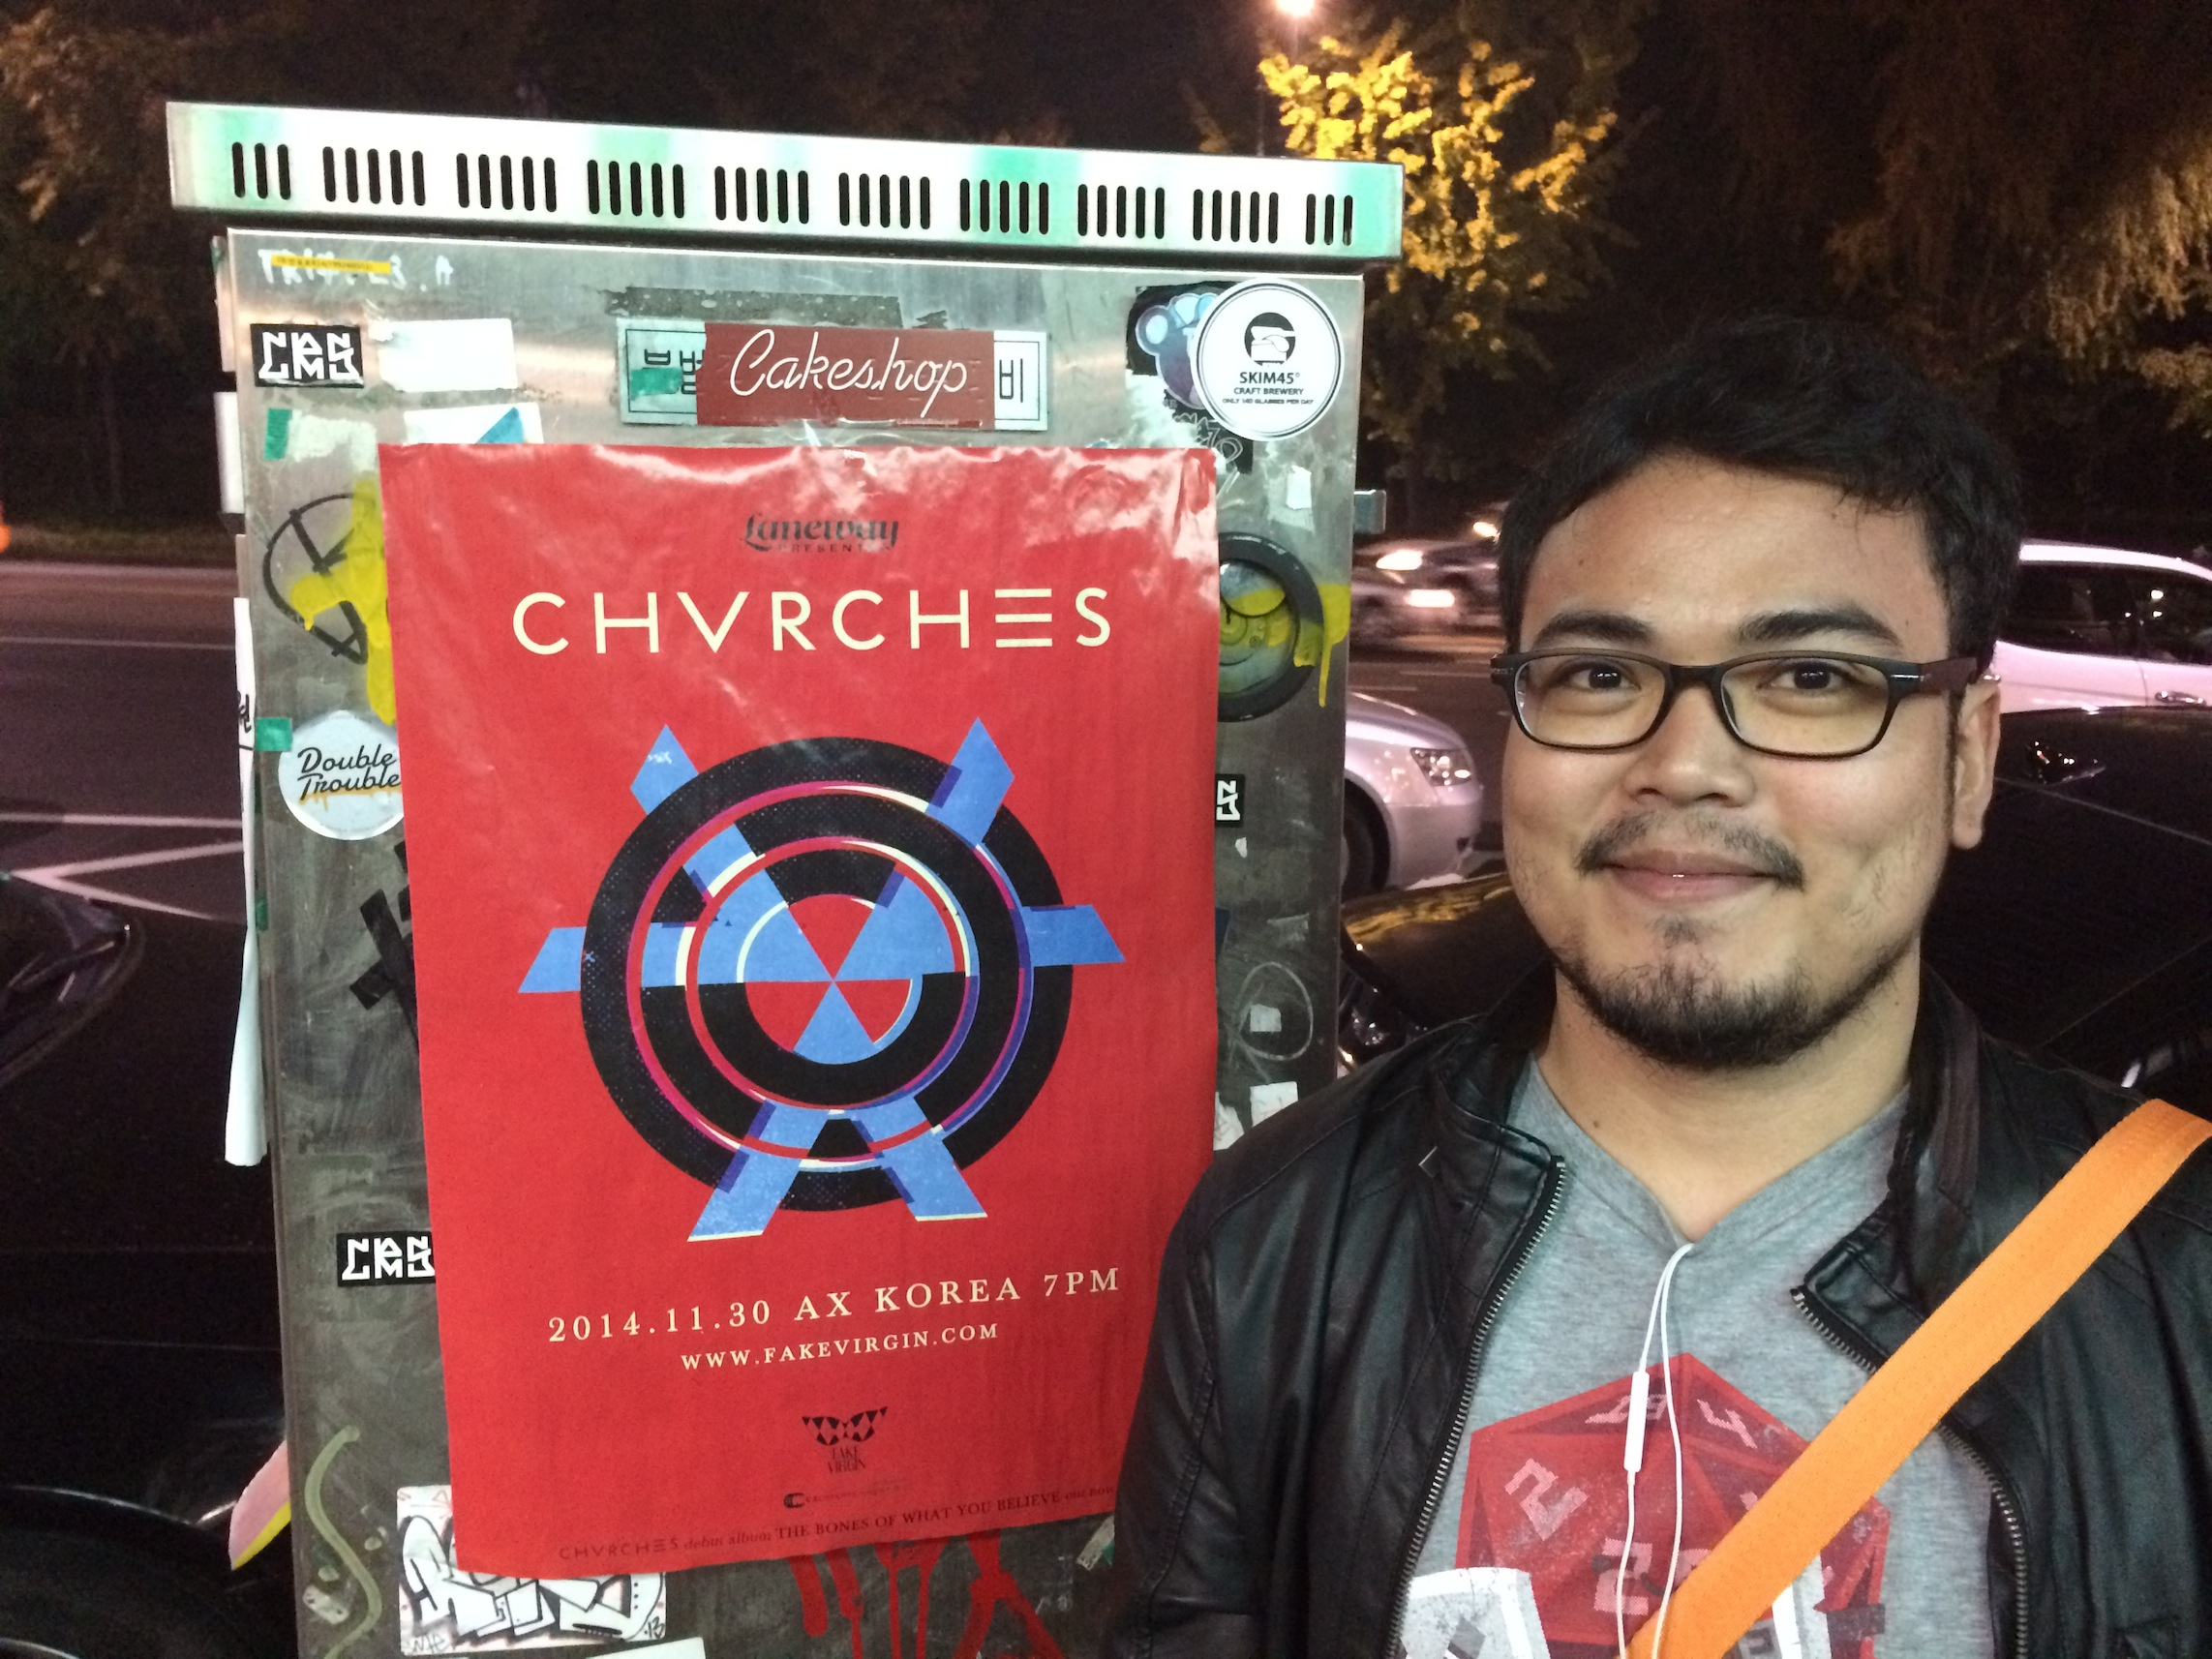 We saw CHVRCHES Asia Tour poster